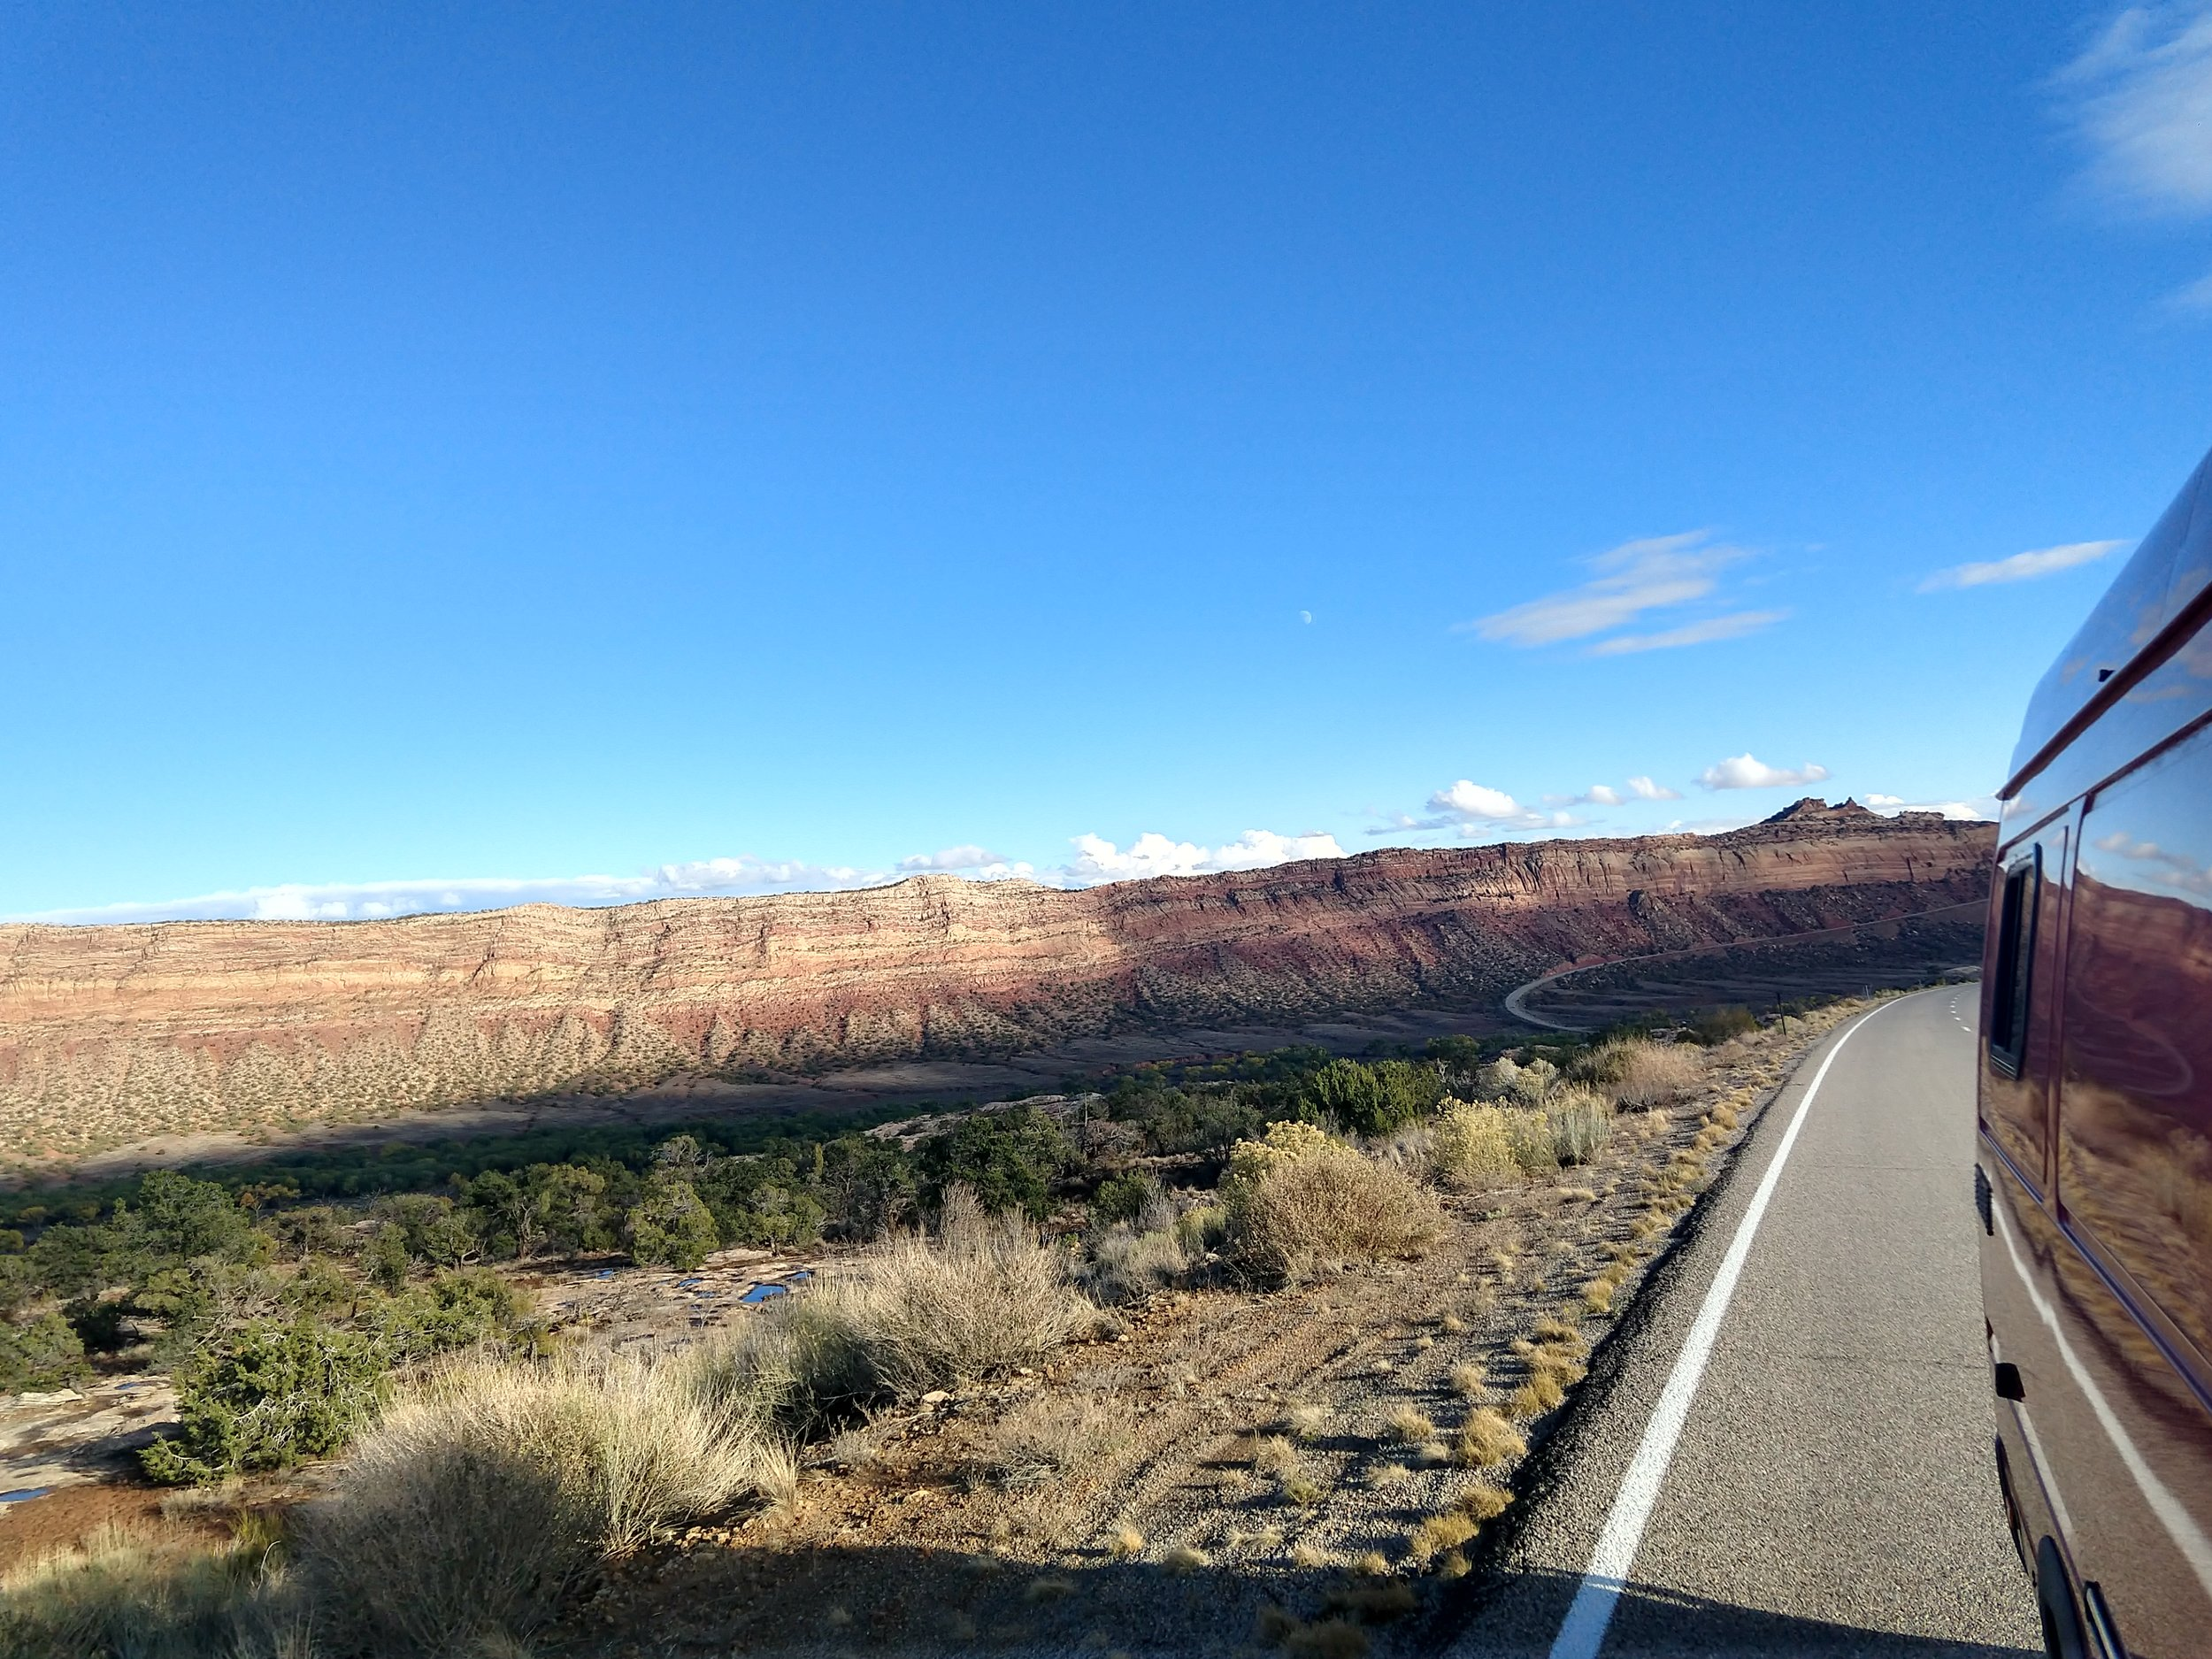 On the road, out of Moab.